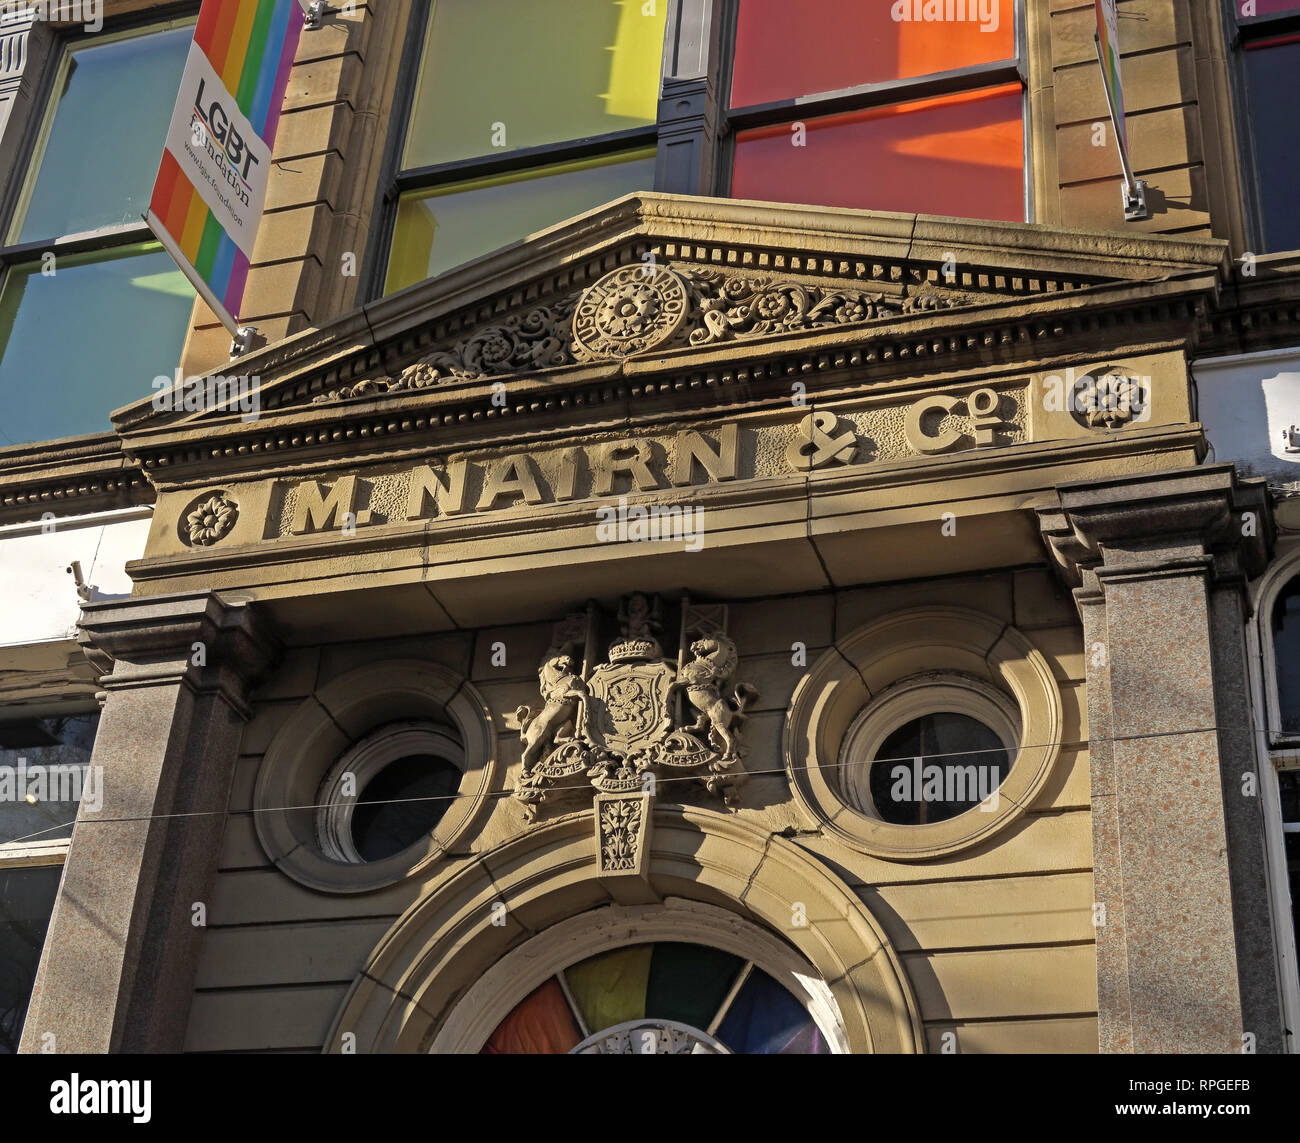 M Nairn & Co, office, canal St, Manchester, Gay Village, Lancashire, England, UK, M1 3HN - Stock Image